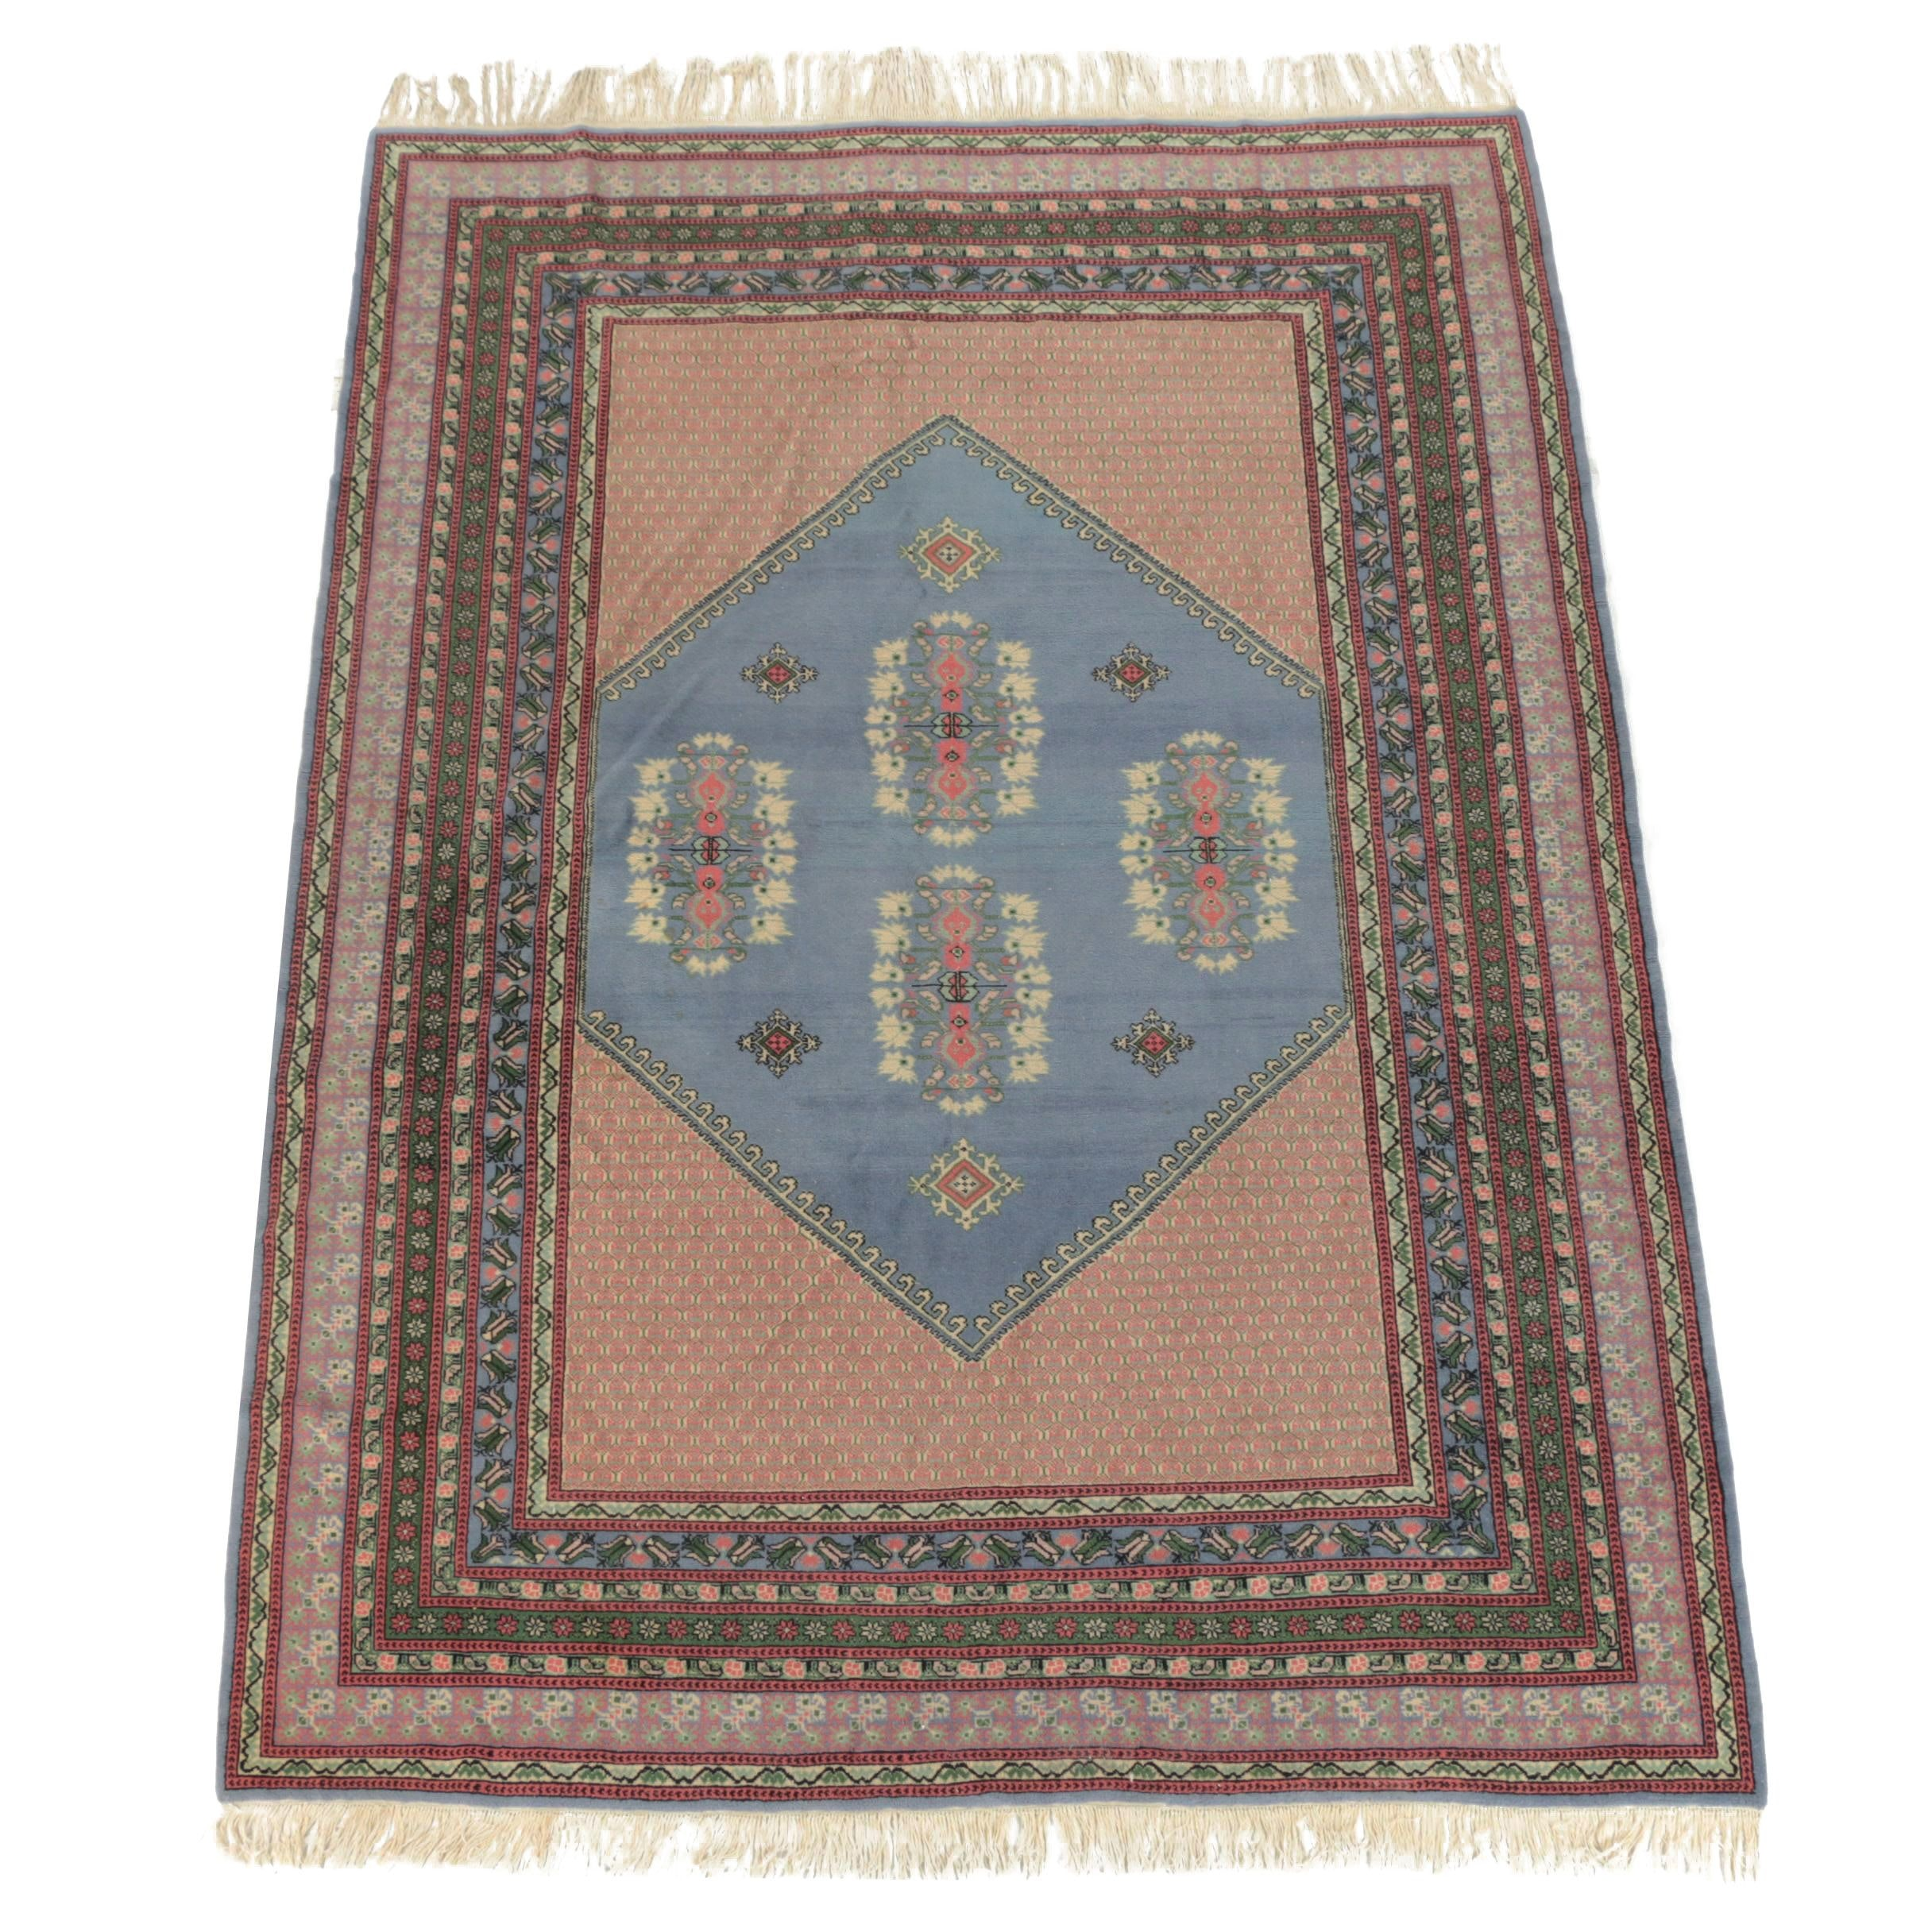 Hand-Knotted Pakistani Wool Rug